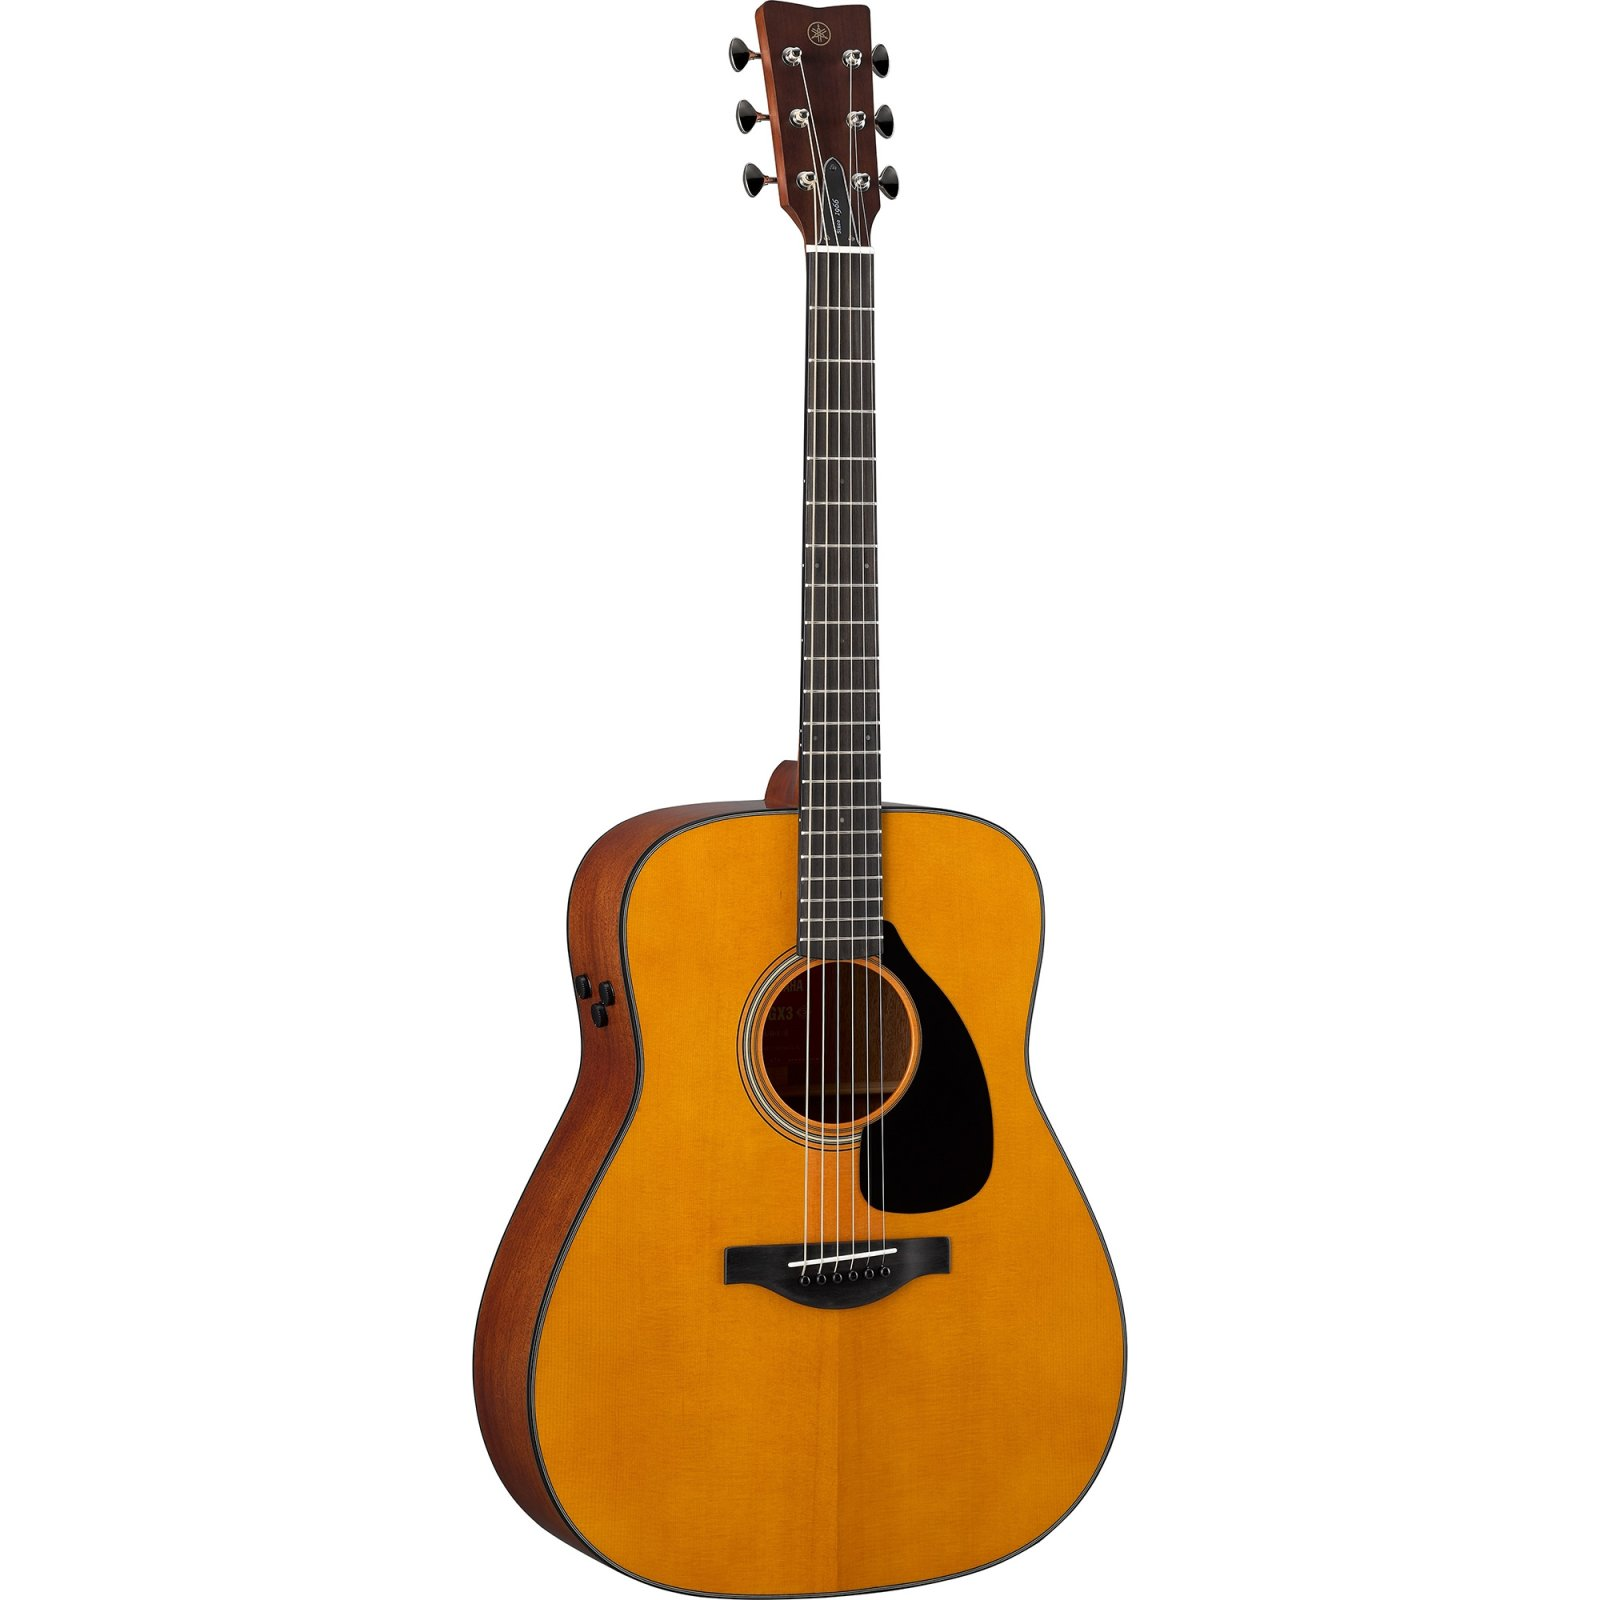 Yamaha FGX3 Red Label Acoustic-Electric Guitar w/Solid Spruce Top, Solid Mahogany B/S, Blackwood FB, Hard Bag-Natural